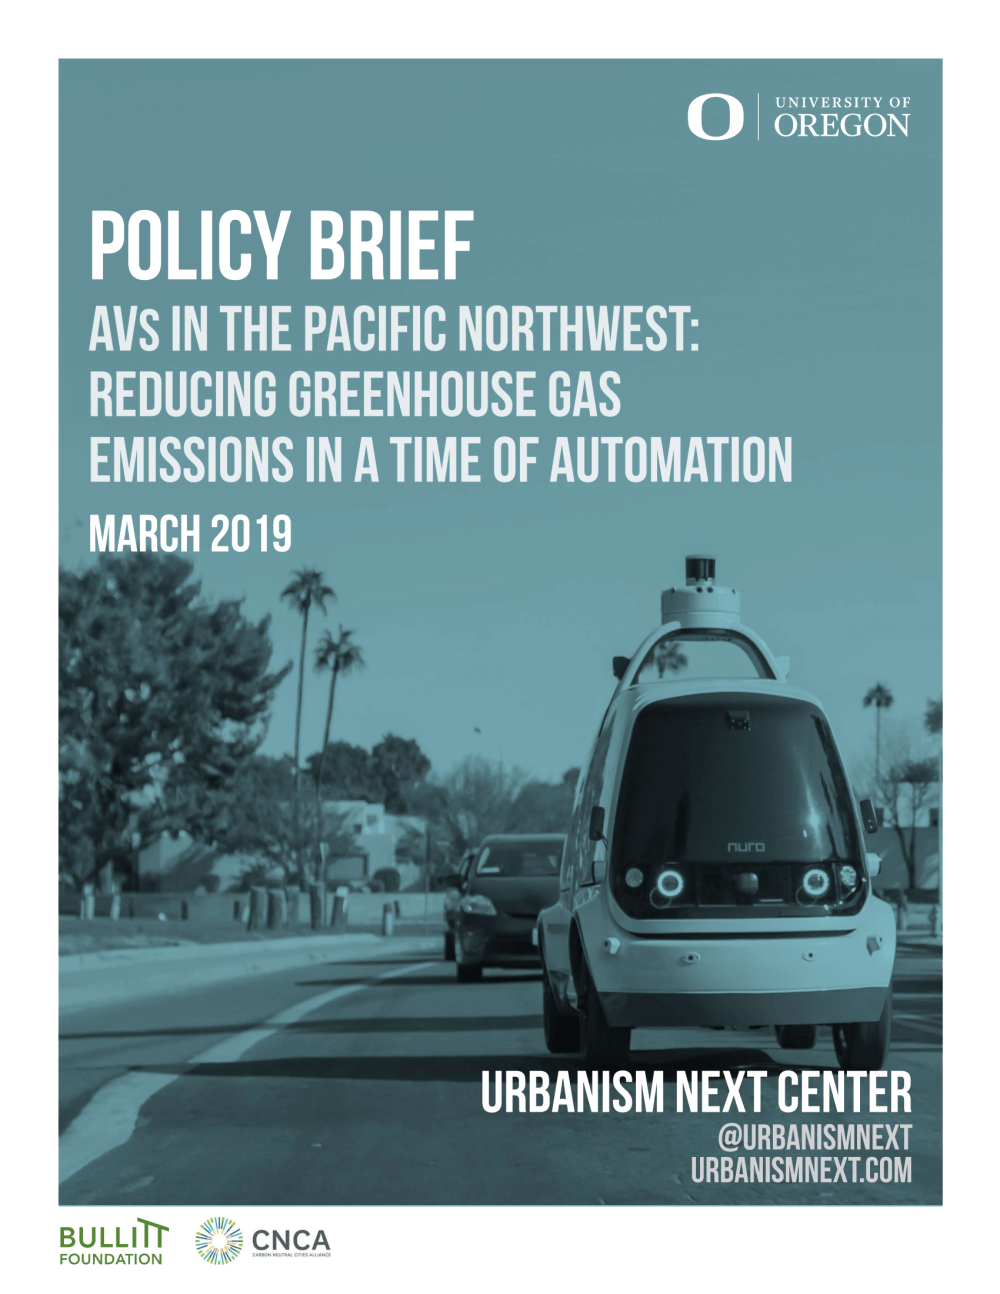 Policy Brief – AVs in the Pacific Northwest: Reducing Greenhouse Gas Emissions in a Time of Automation